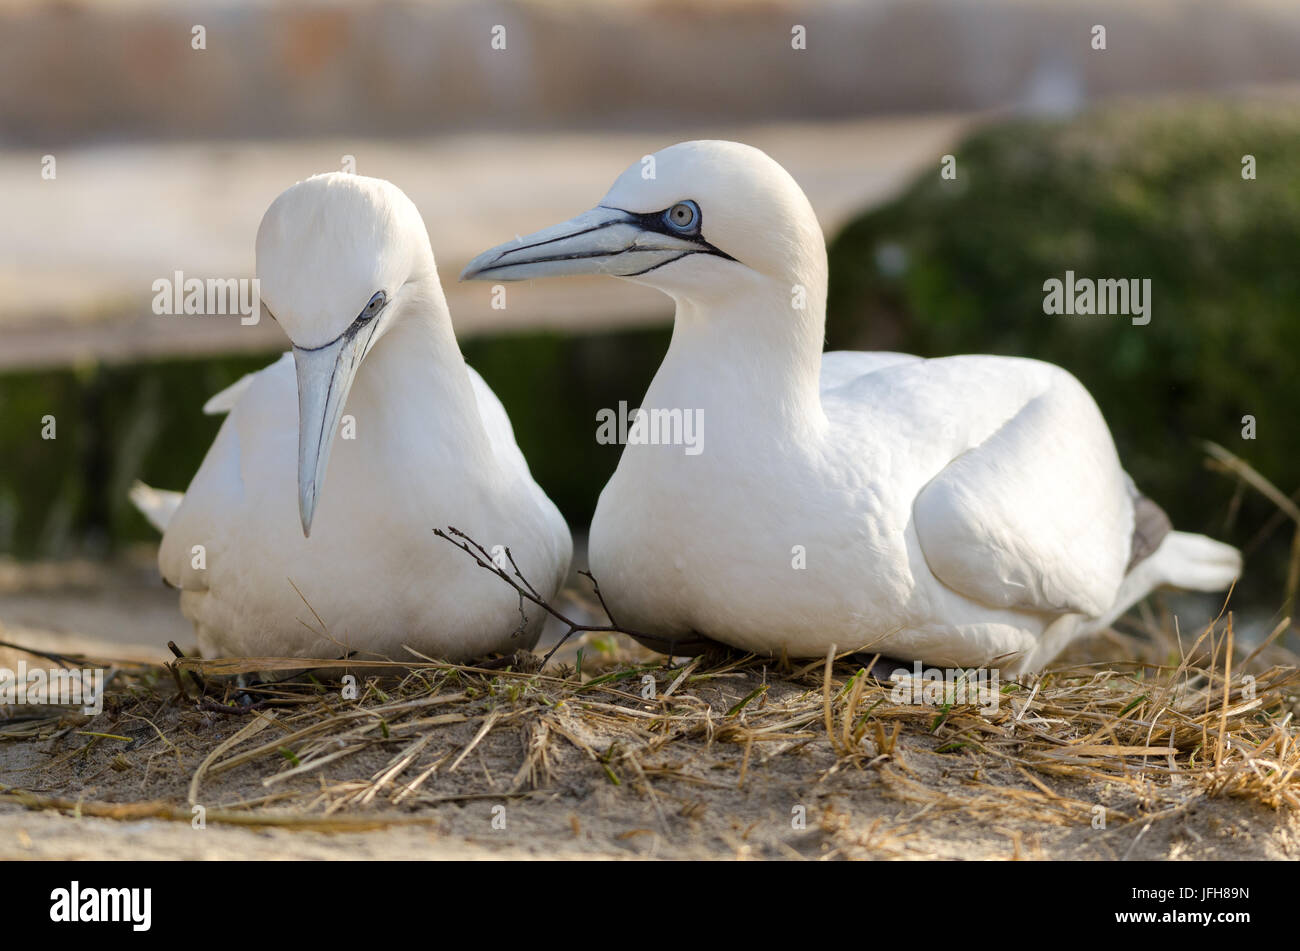 Nothern Gannet. - Stock Image